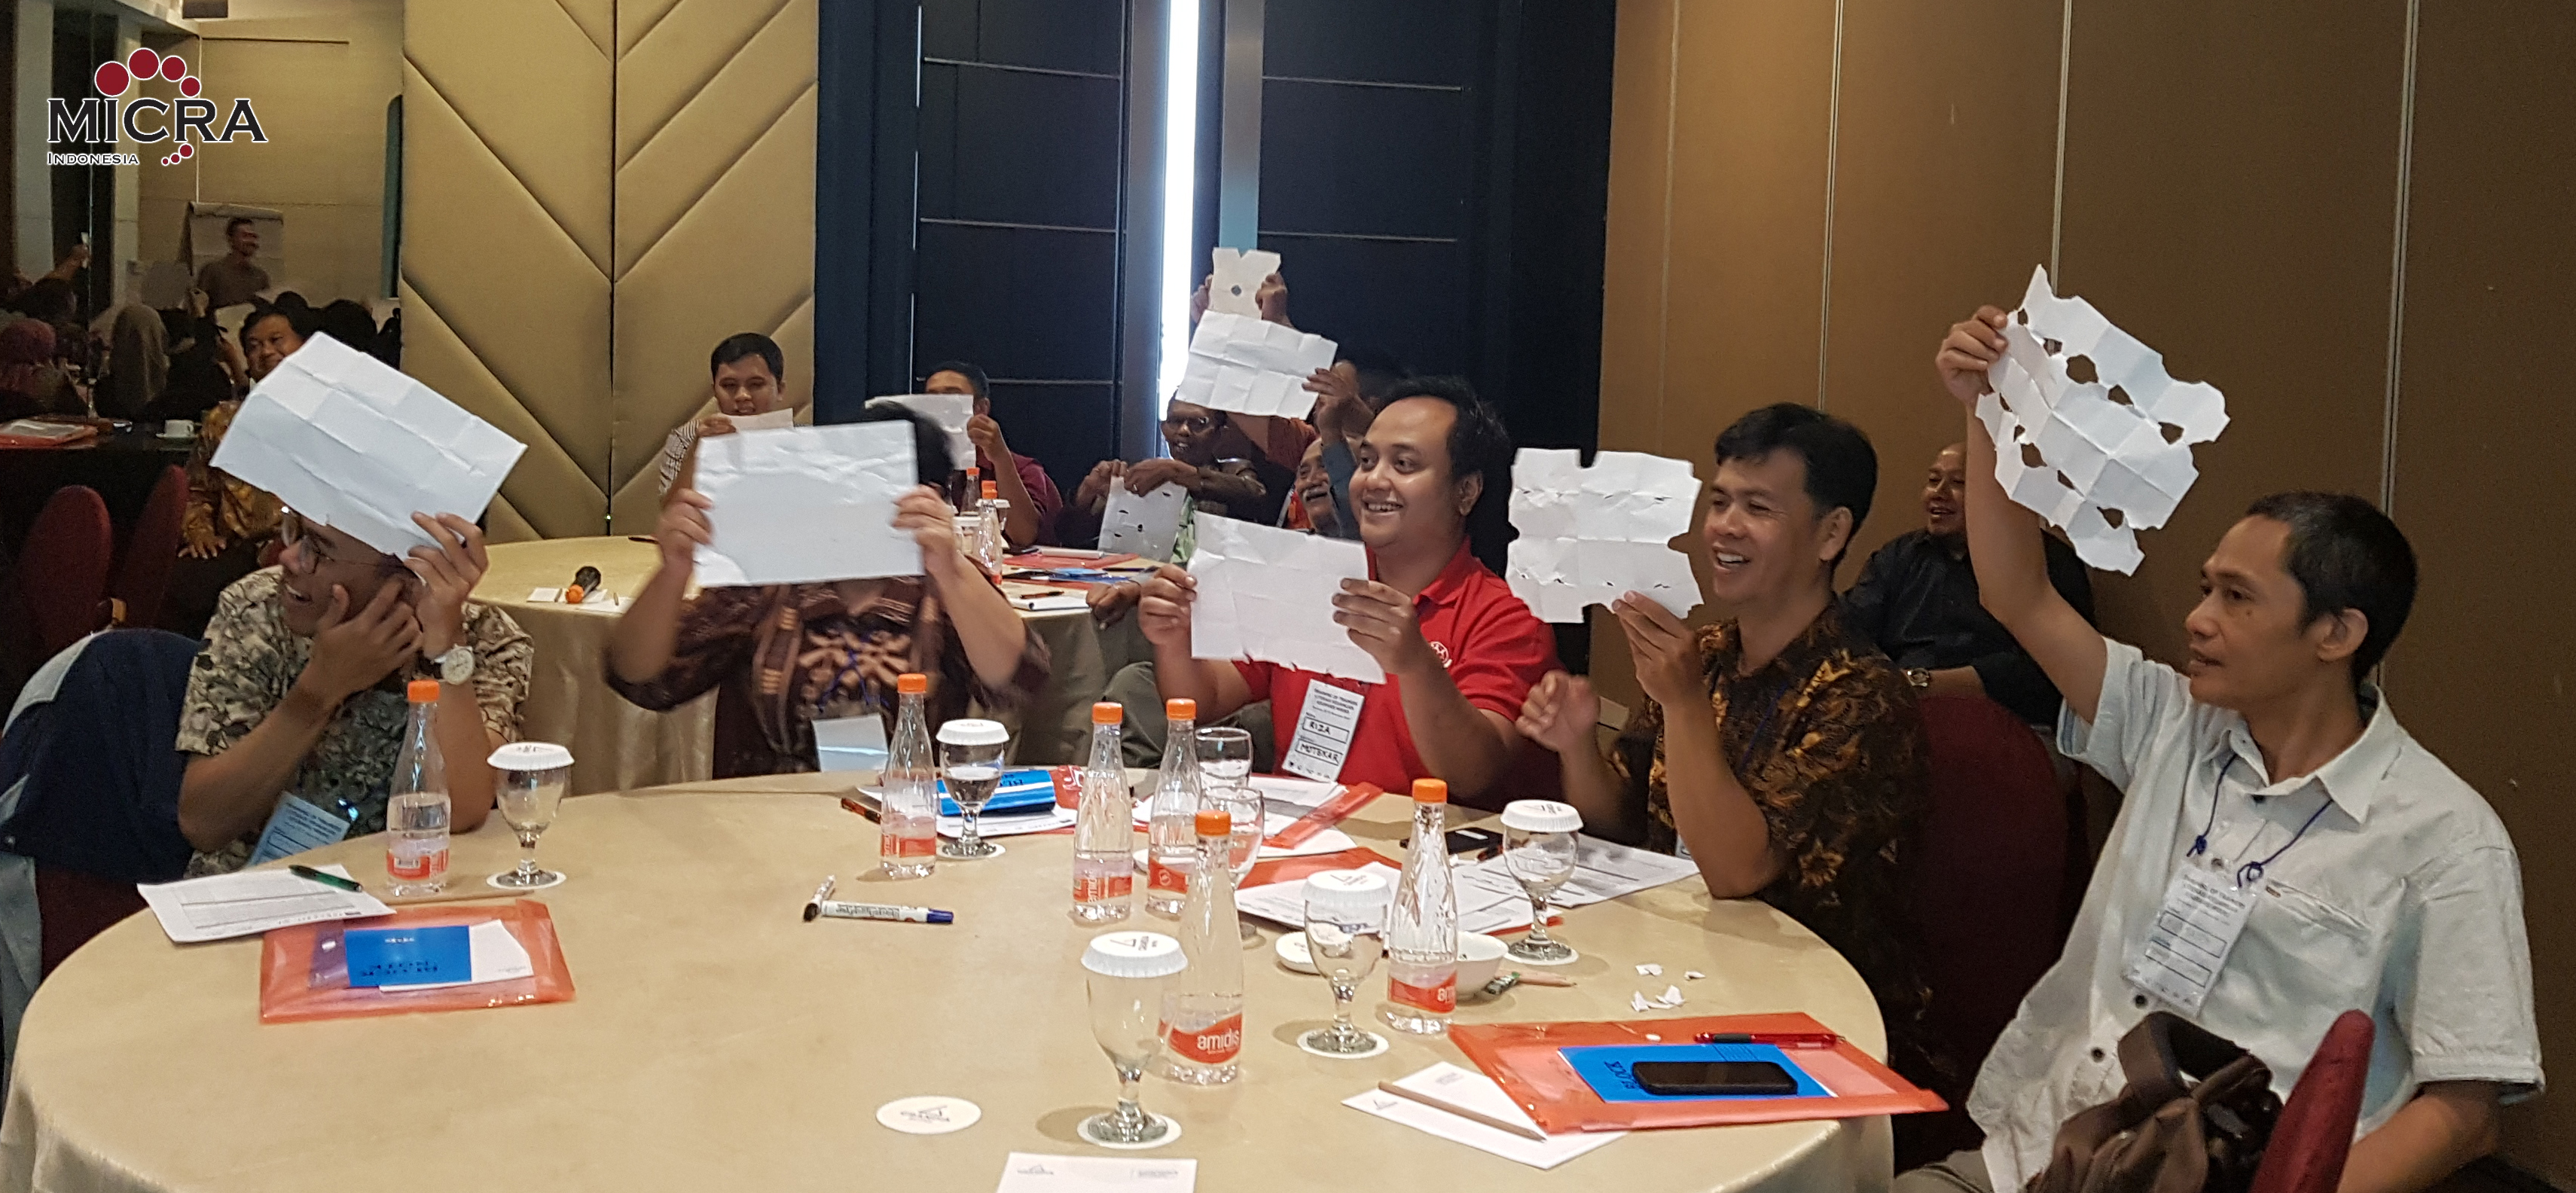 Participants of ToT Bandung learn training materials thru games